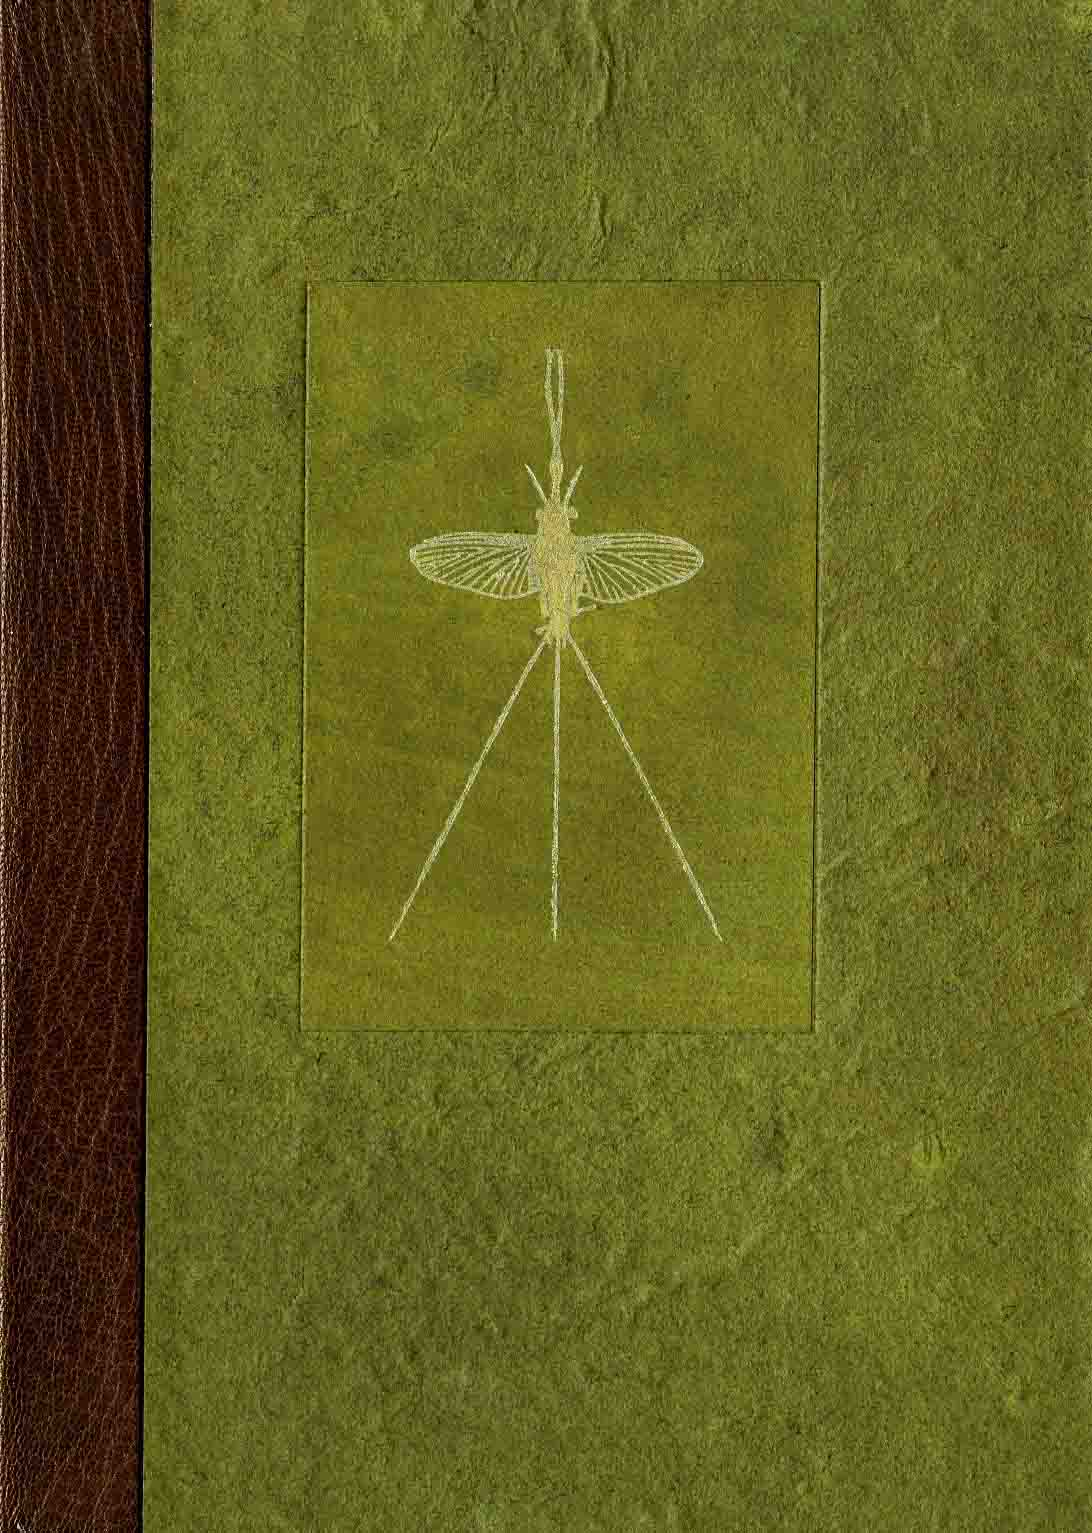 Mayflies of the Driftless Region, 2005